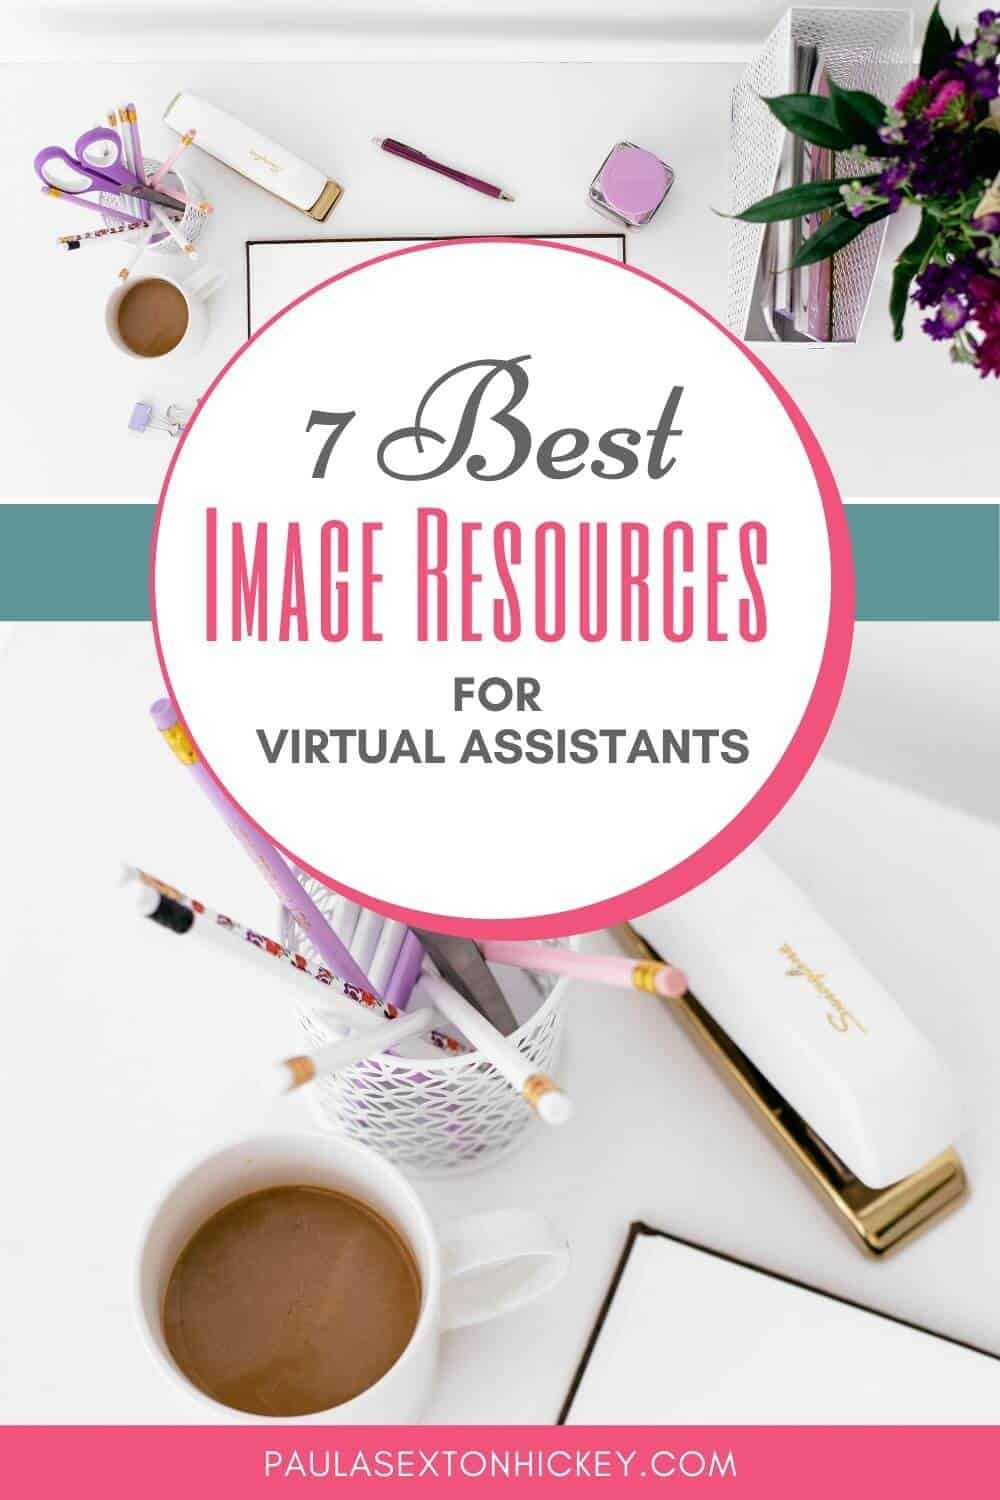 The Best Image Resources for Virtual Assistants